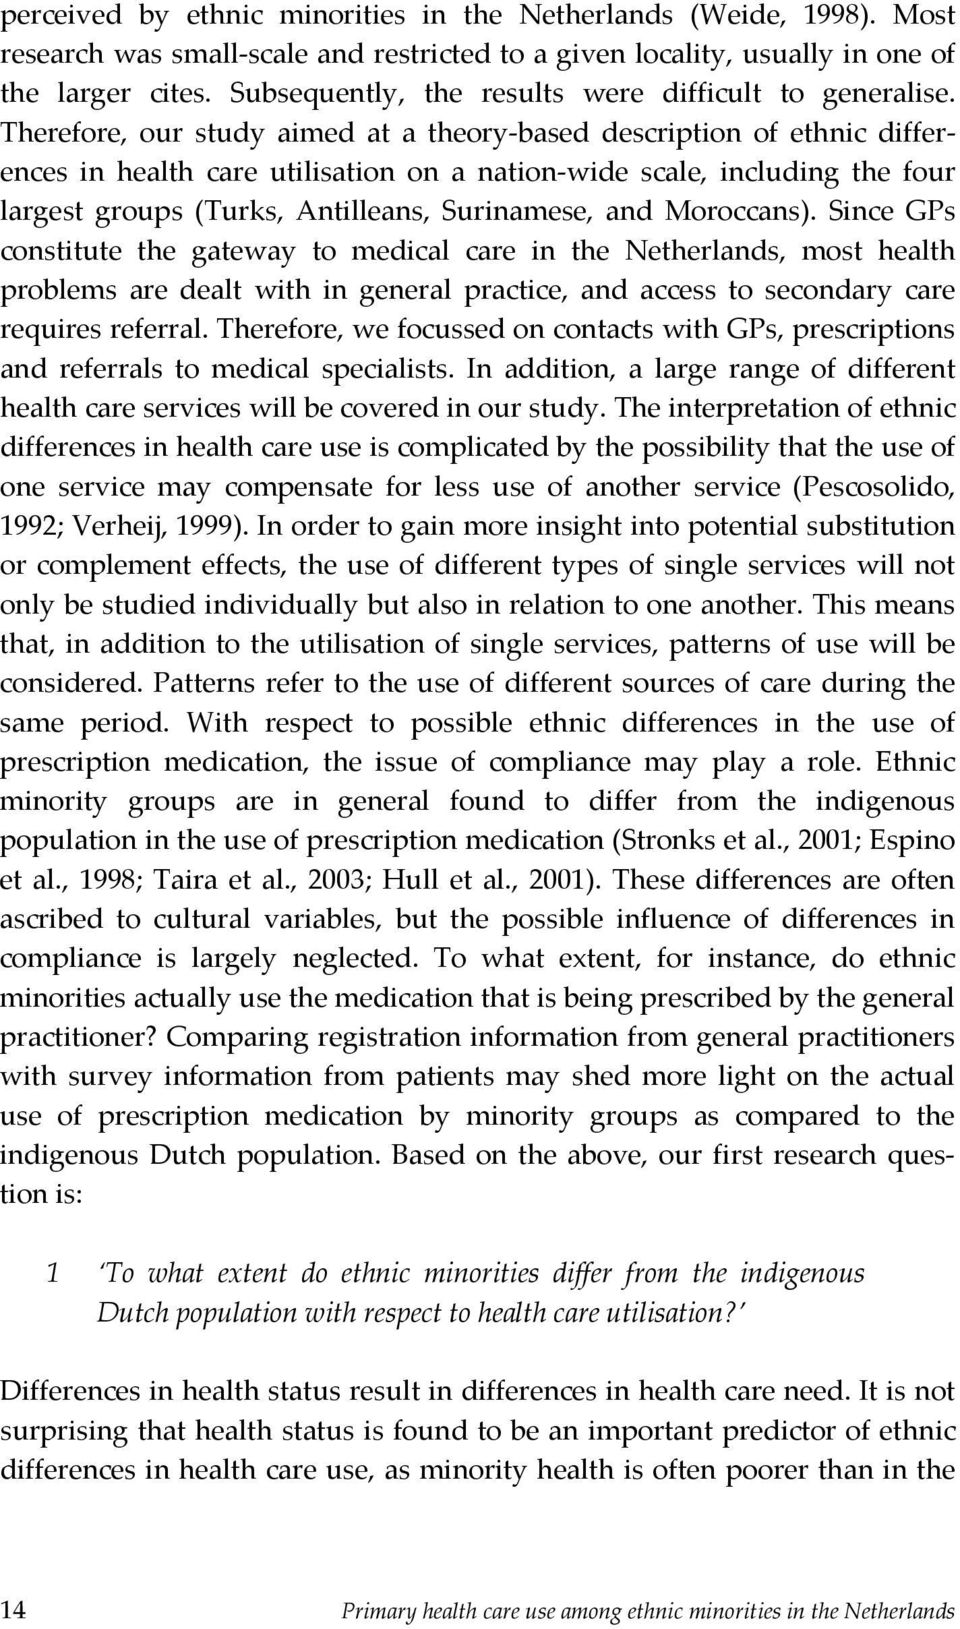 Therefore, our study aimed at a theory based description of ethnic differences in health care utilisation on a nation wide scale, including the four largest groups (Turks, Antilleans, Surinamese, and